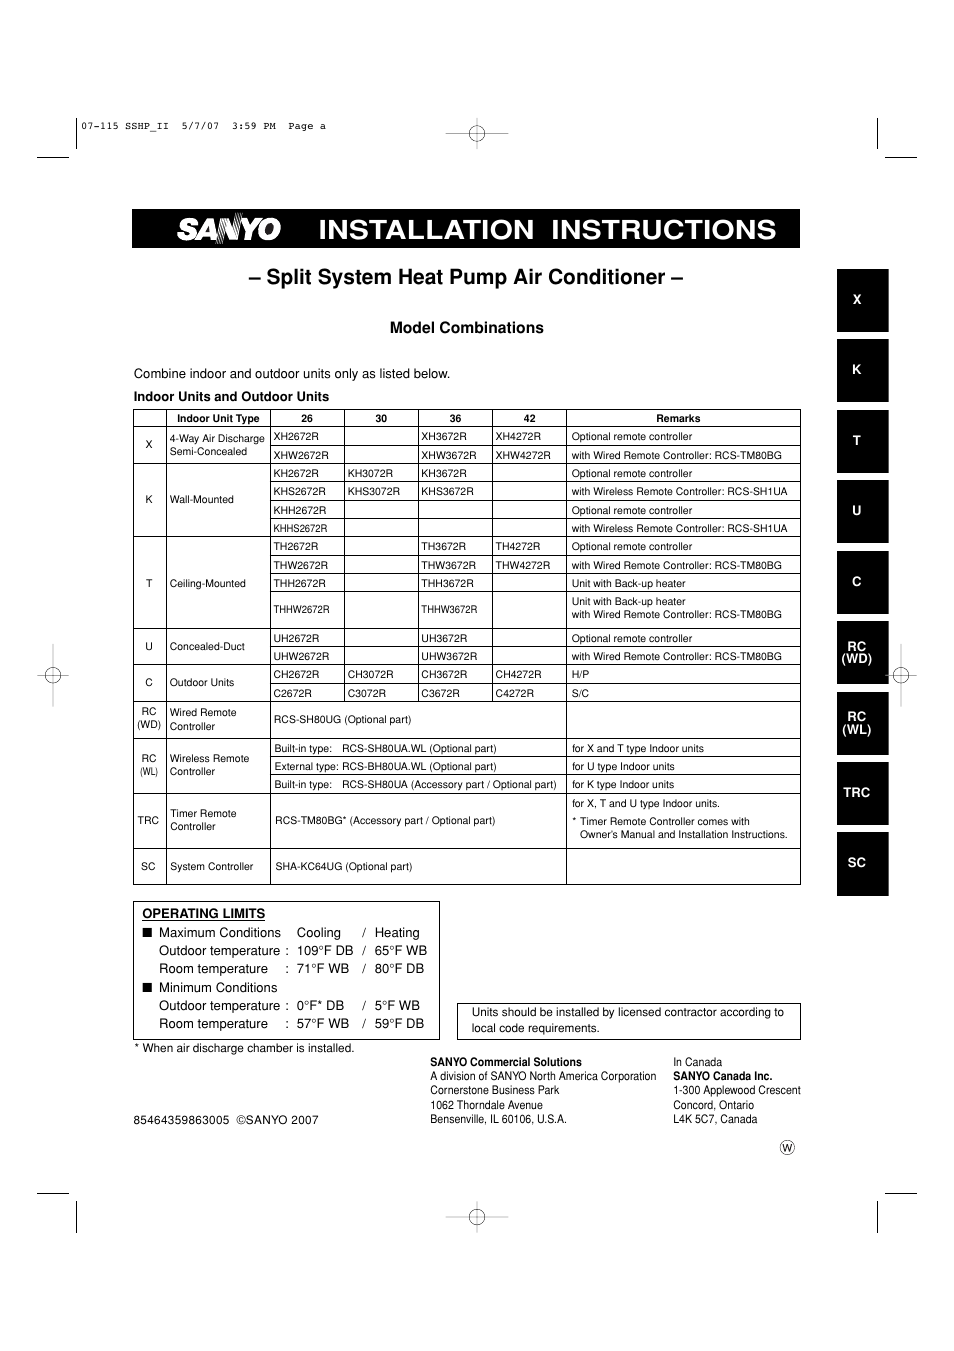 sanyo c4272r s  c user manual 111 pages also for Sanyo HVAC Service Manuals sanyo air conditioner service manual